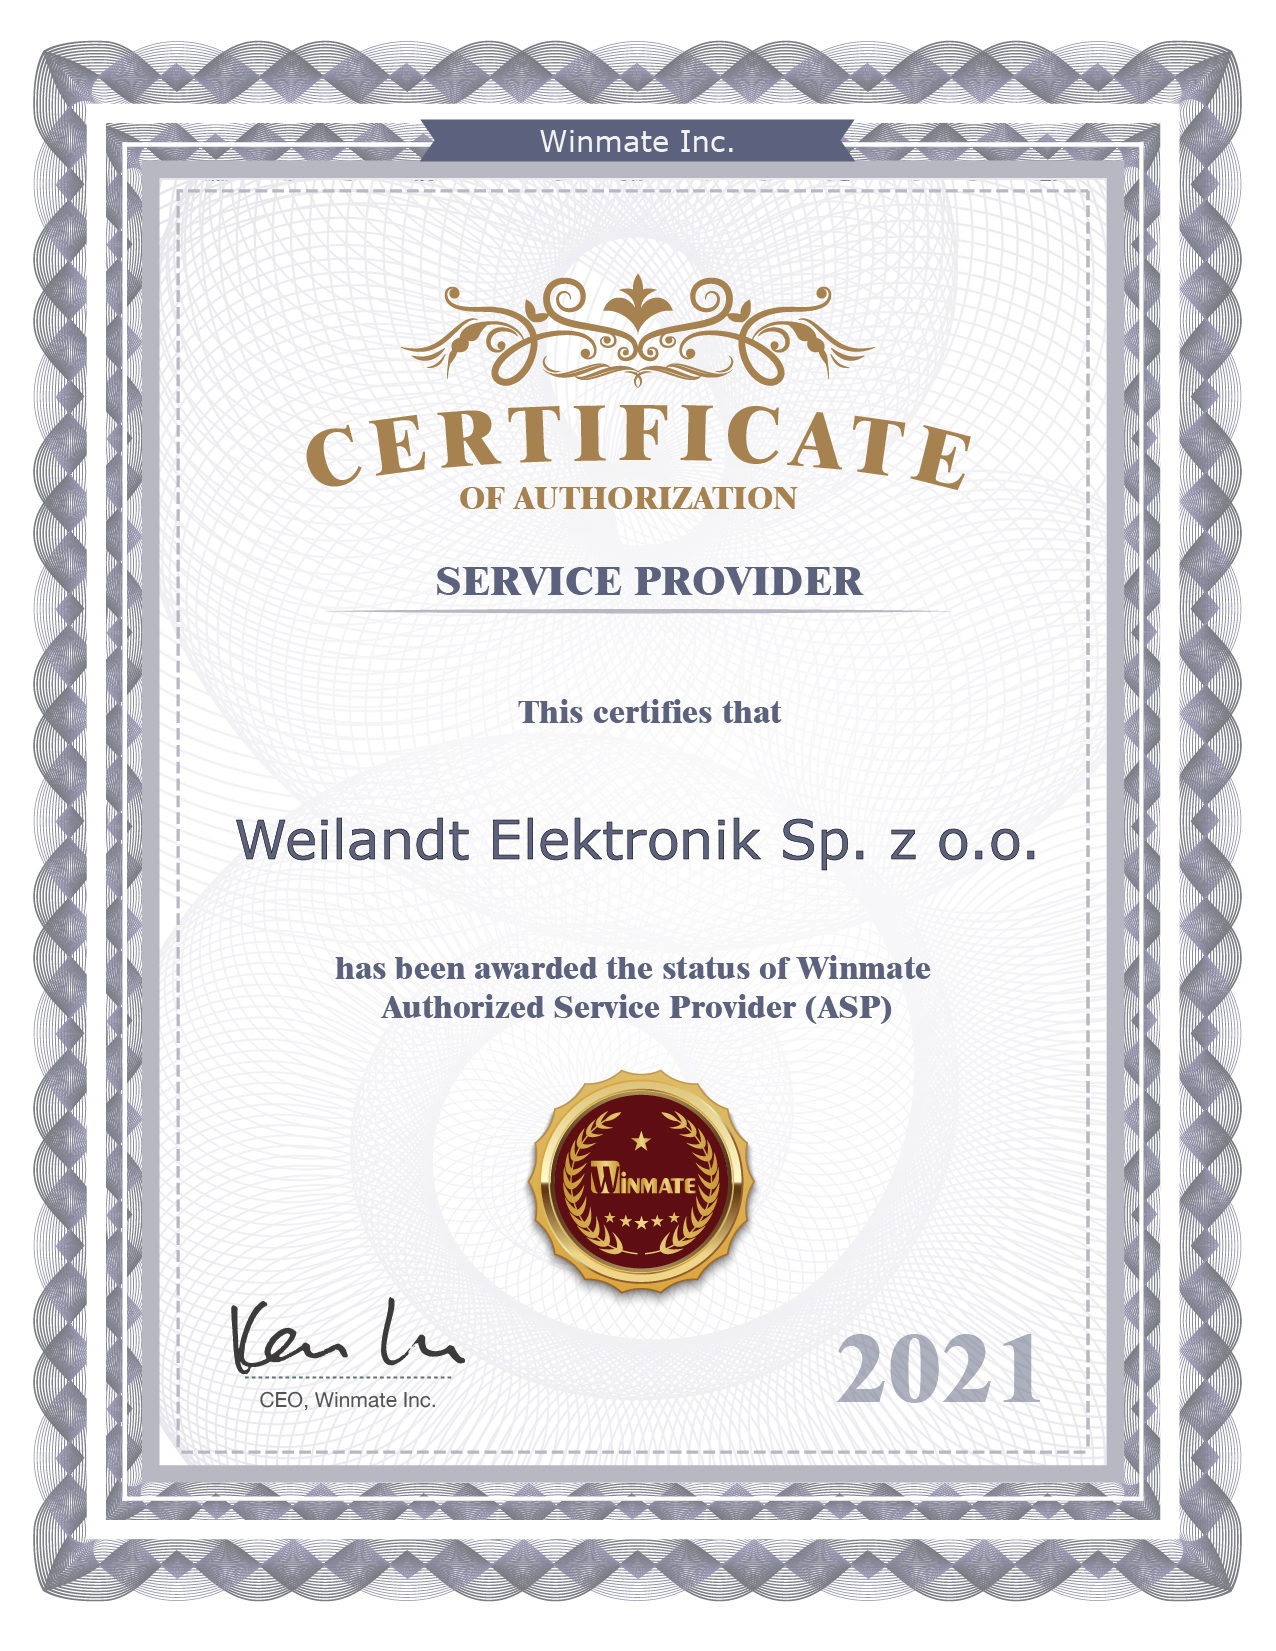 Certificate of Authorization Winmate-2021